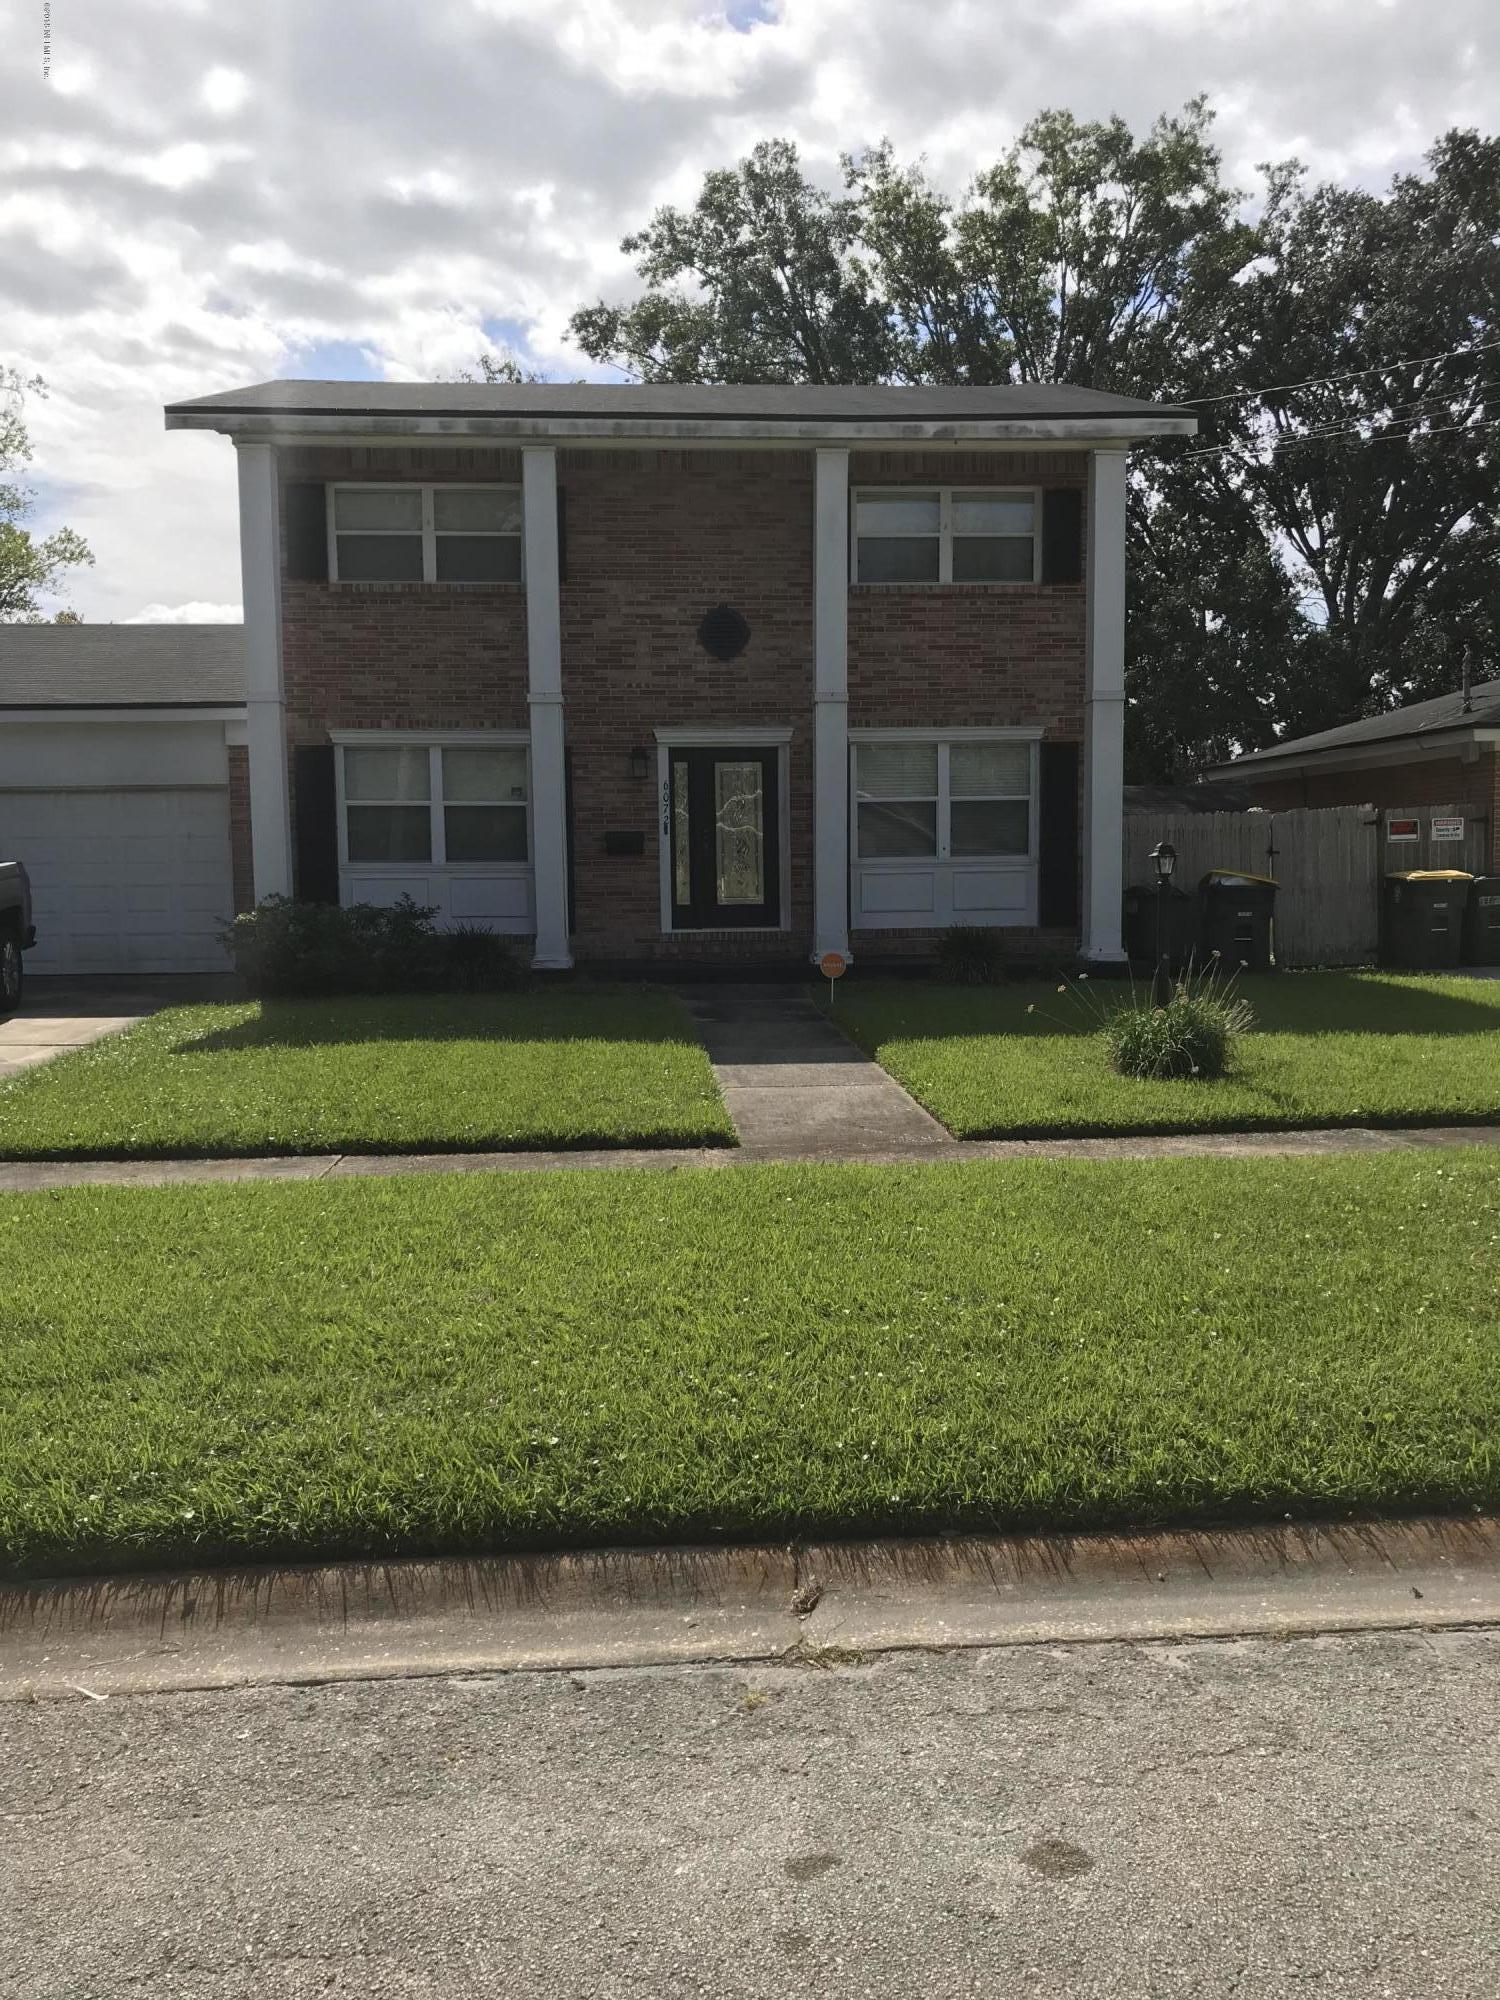 6072 BIZIER, JACKSONVILLE, FLORIDA 32244, 3 Bedrooms Bedrooms, ,2 BathroomsBathrooms,Residential - single family,For sale,BIZIER,964089